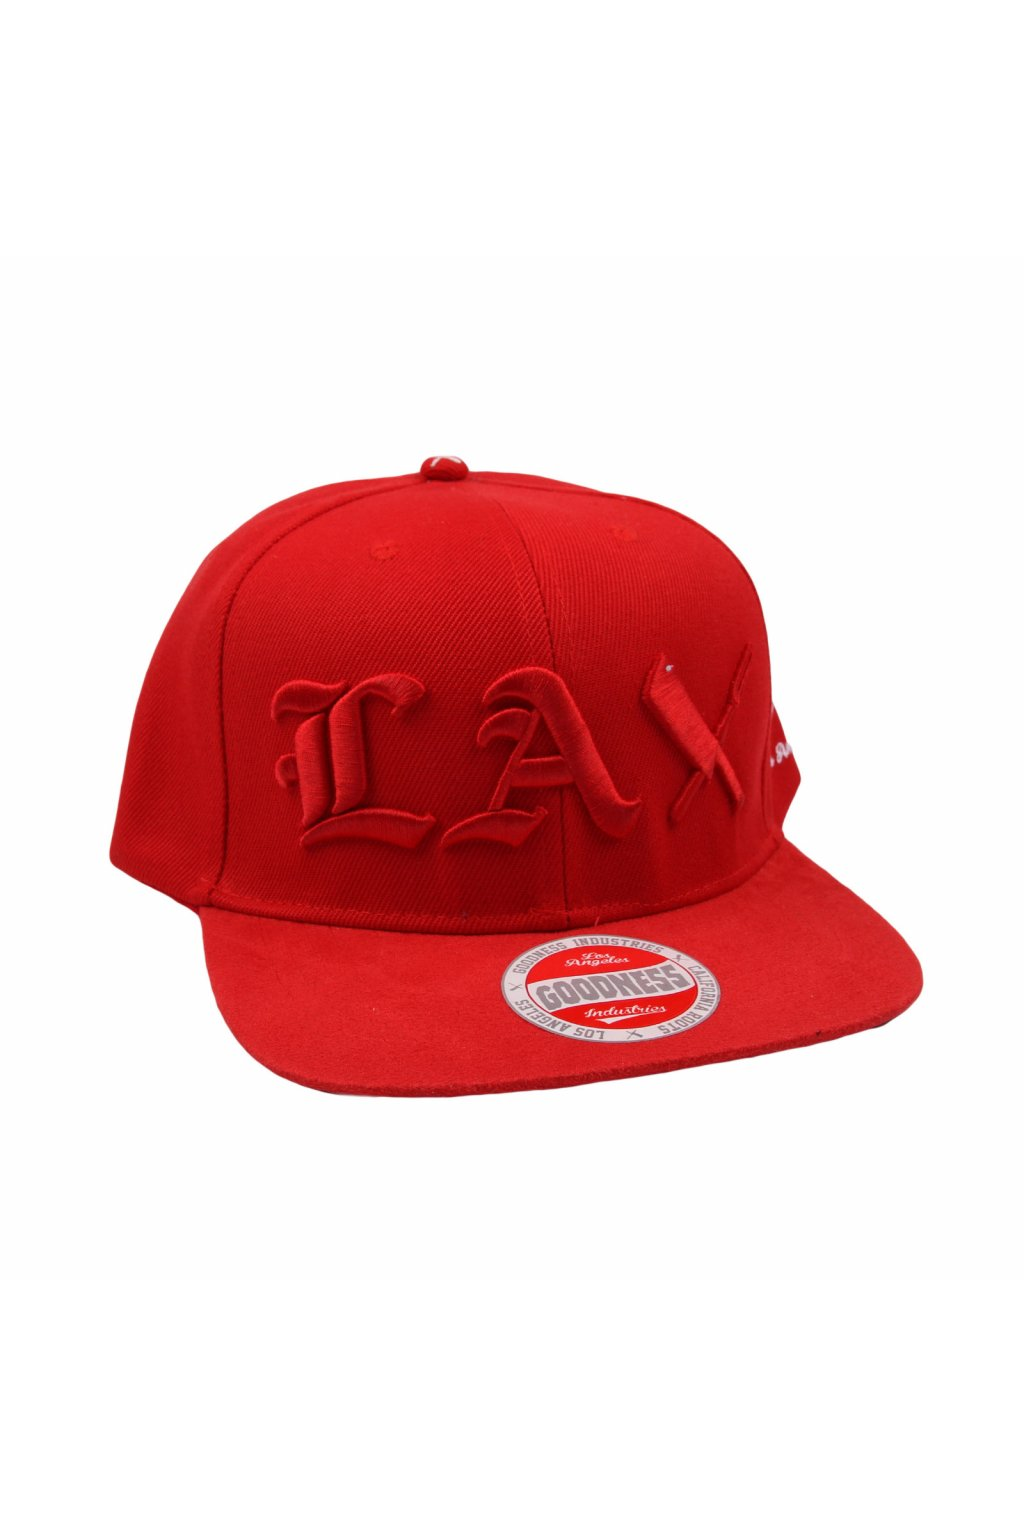 Goodnes Industries red obr1